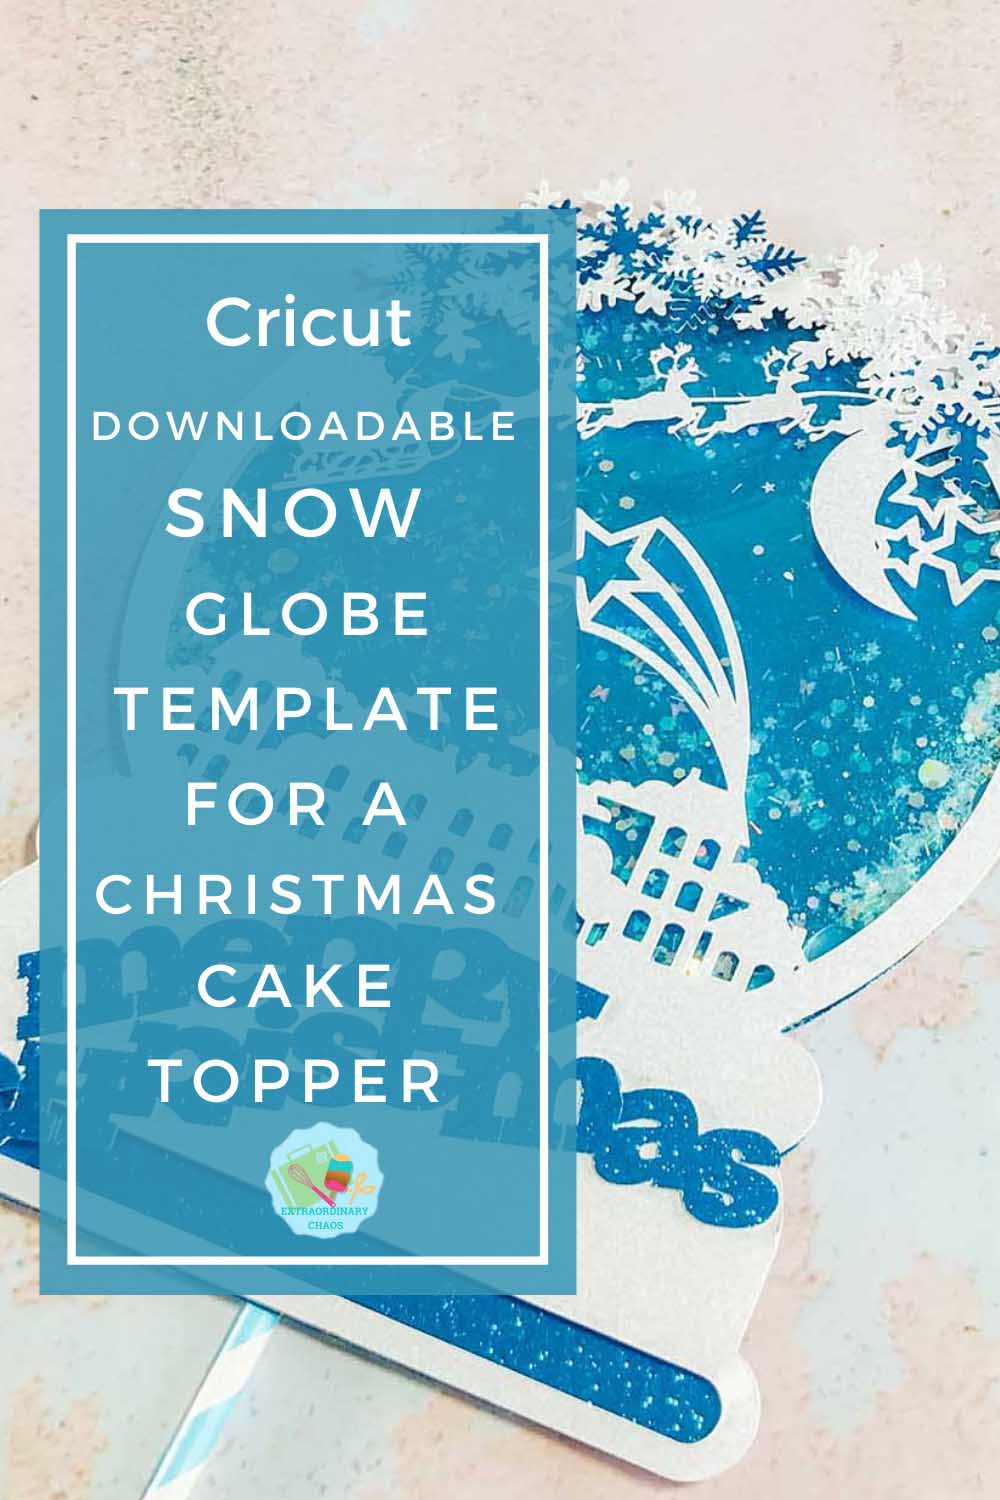 Downloadable Cricut Snow Globe Template for a Christmas Cake Topper